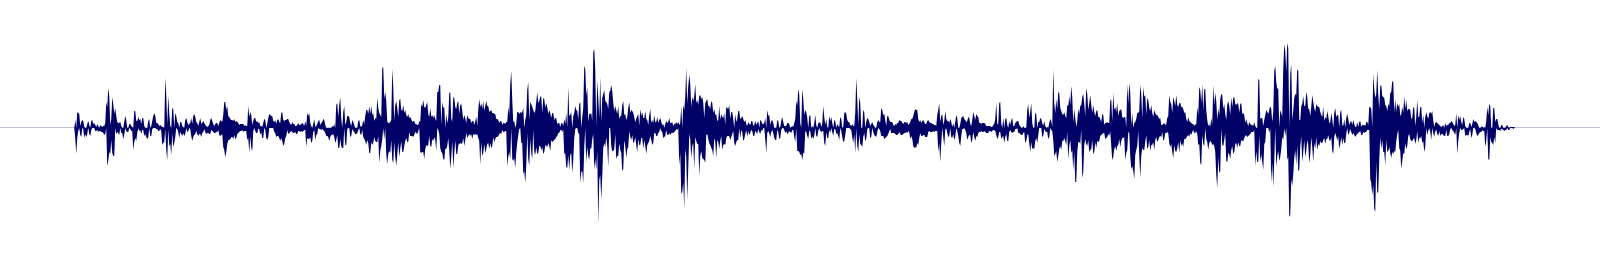 waveform of track #137552